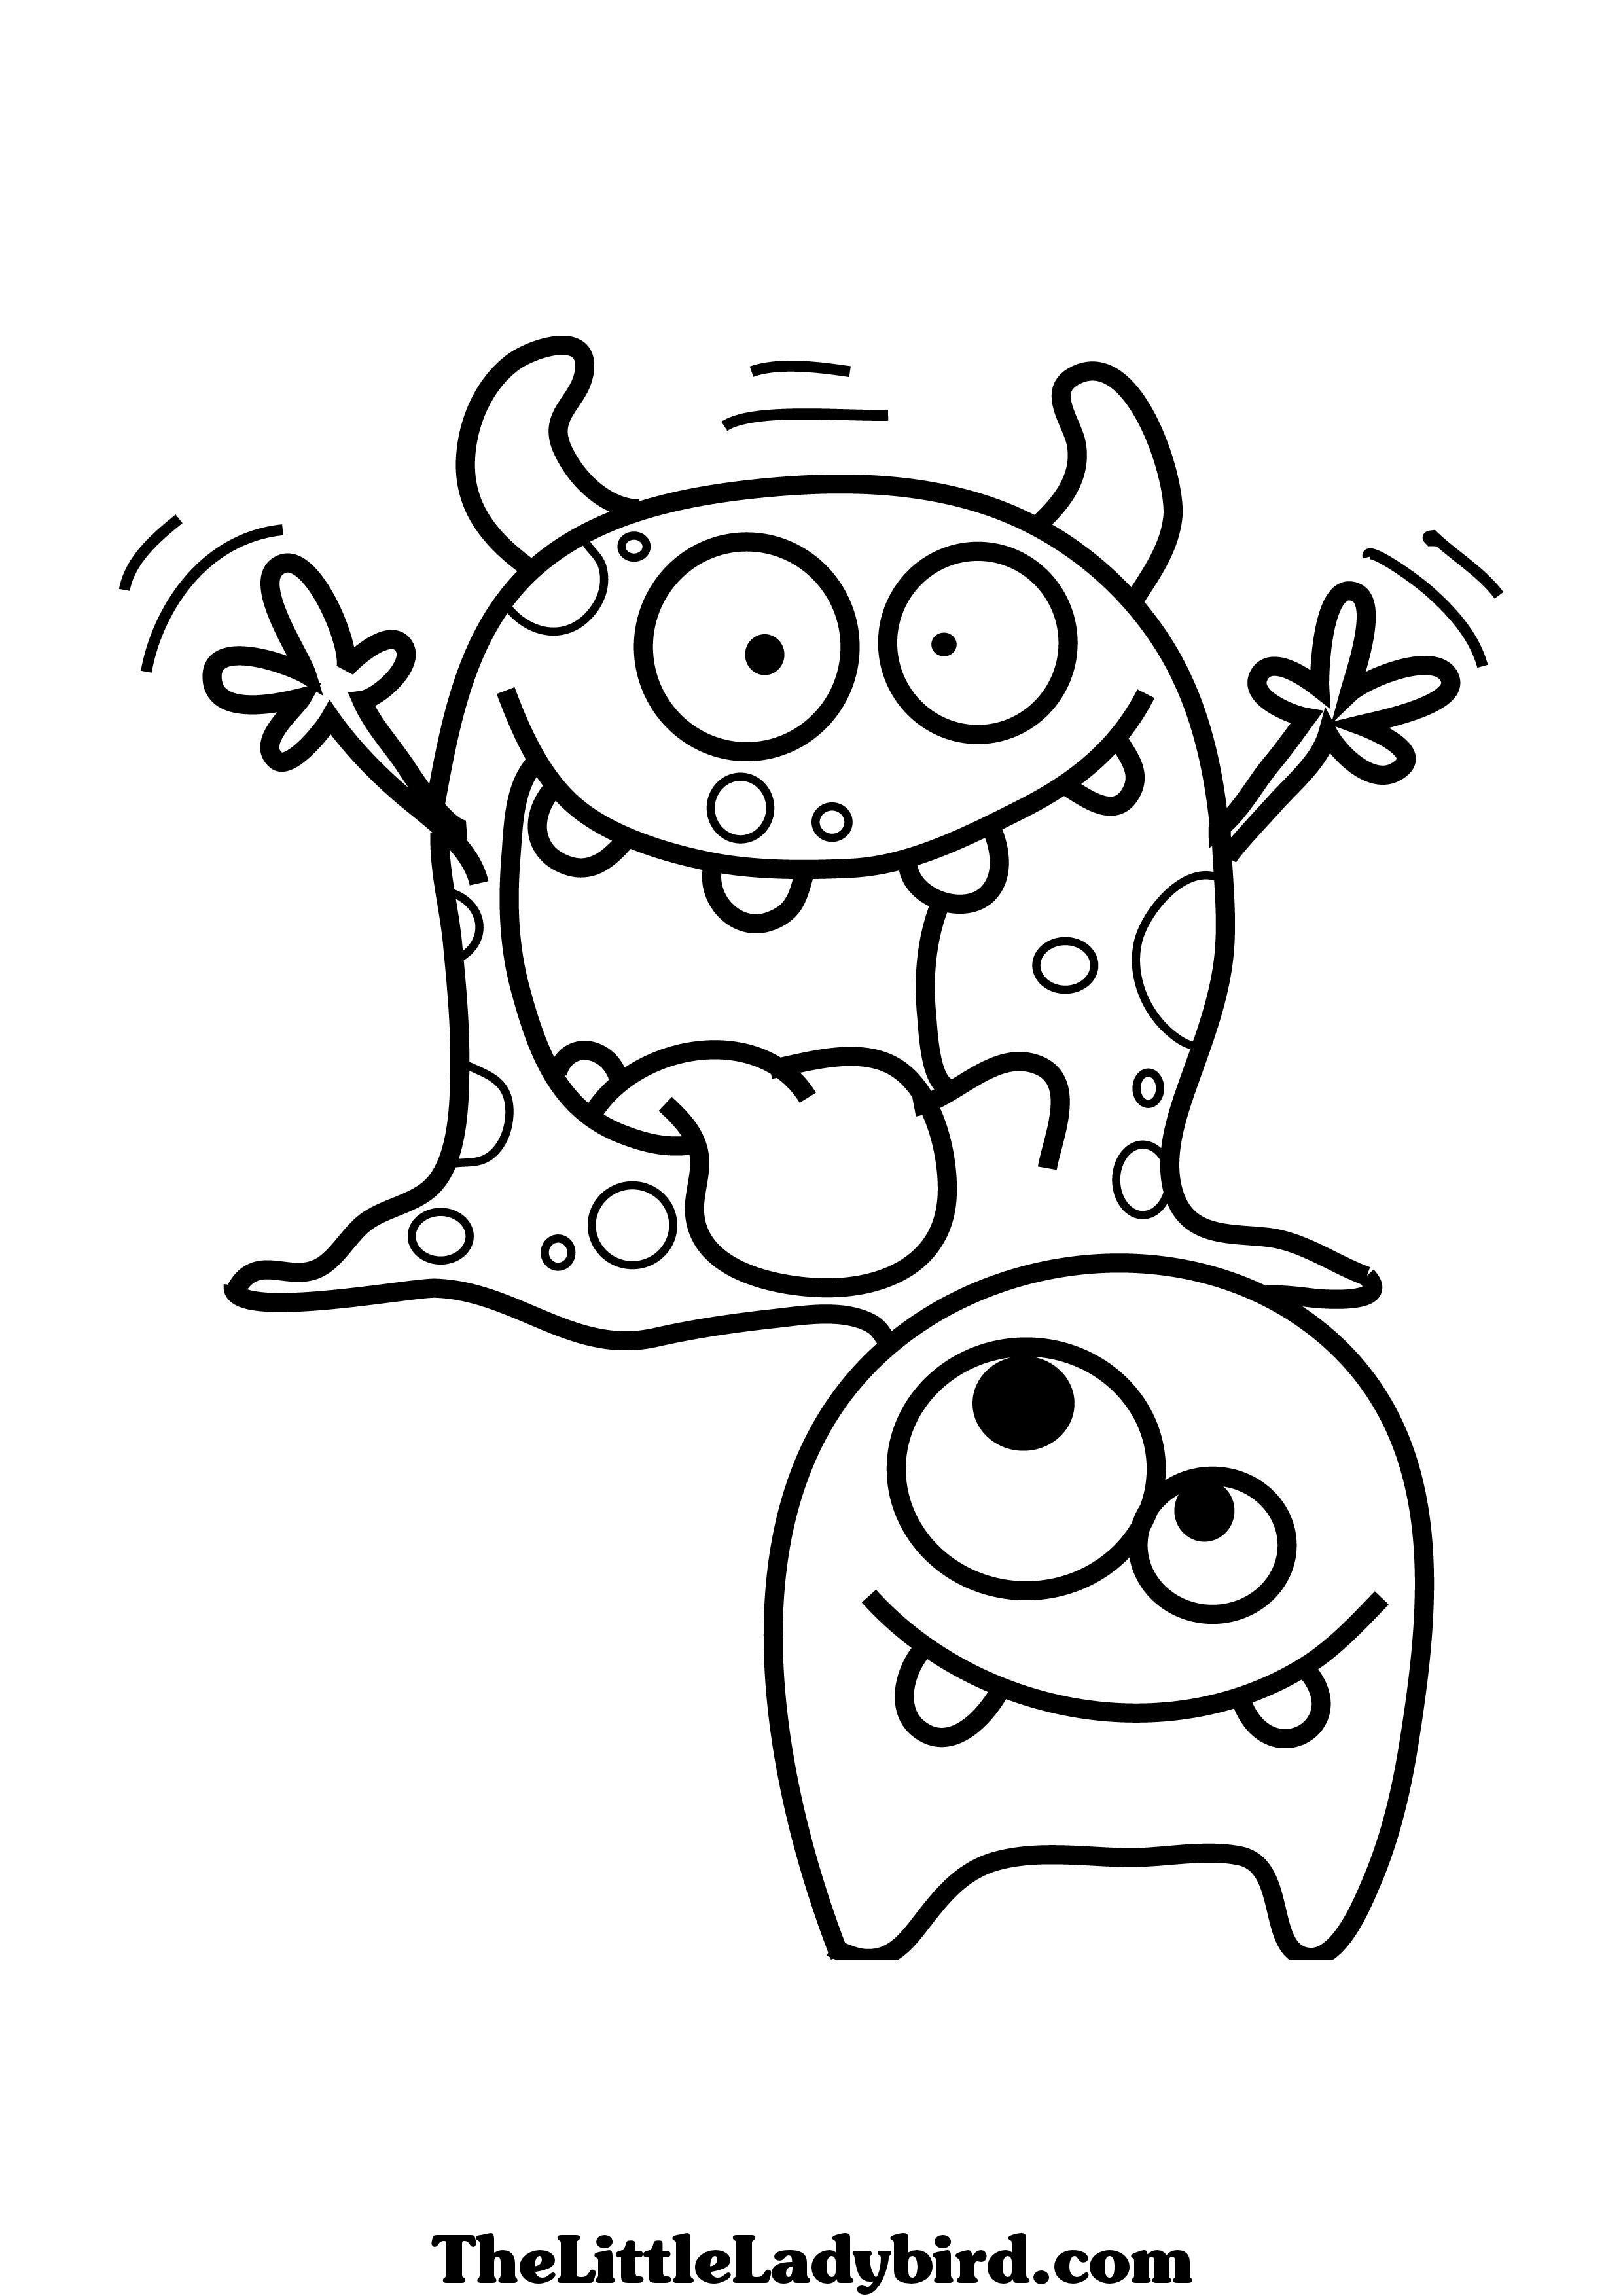 Sea Monster Coloring Pages Coloring Ideas Coloring Ideas Sea Monster Pages Tingameday Com